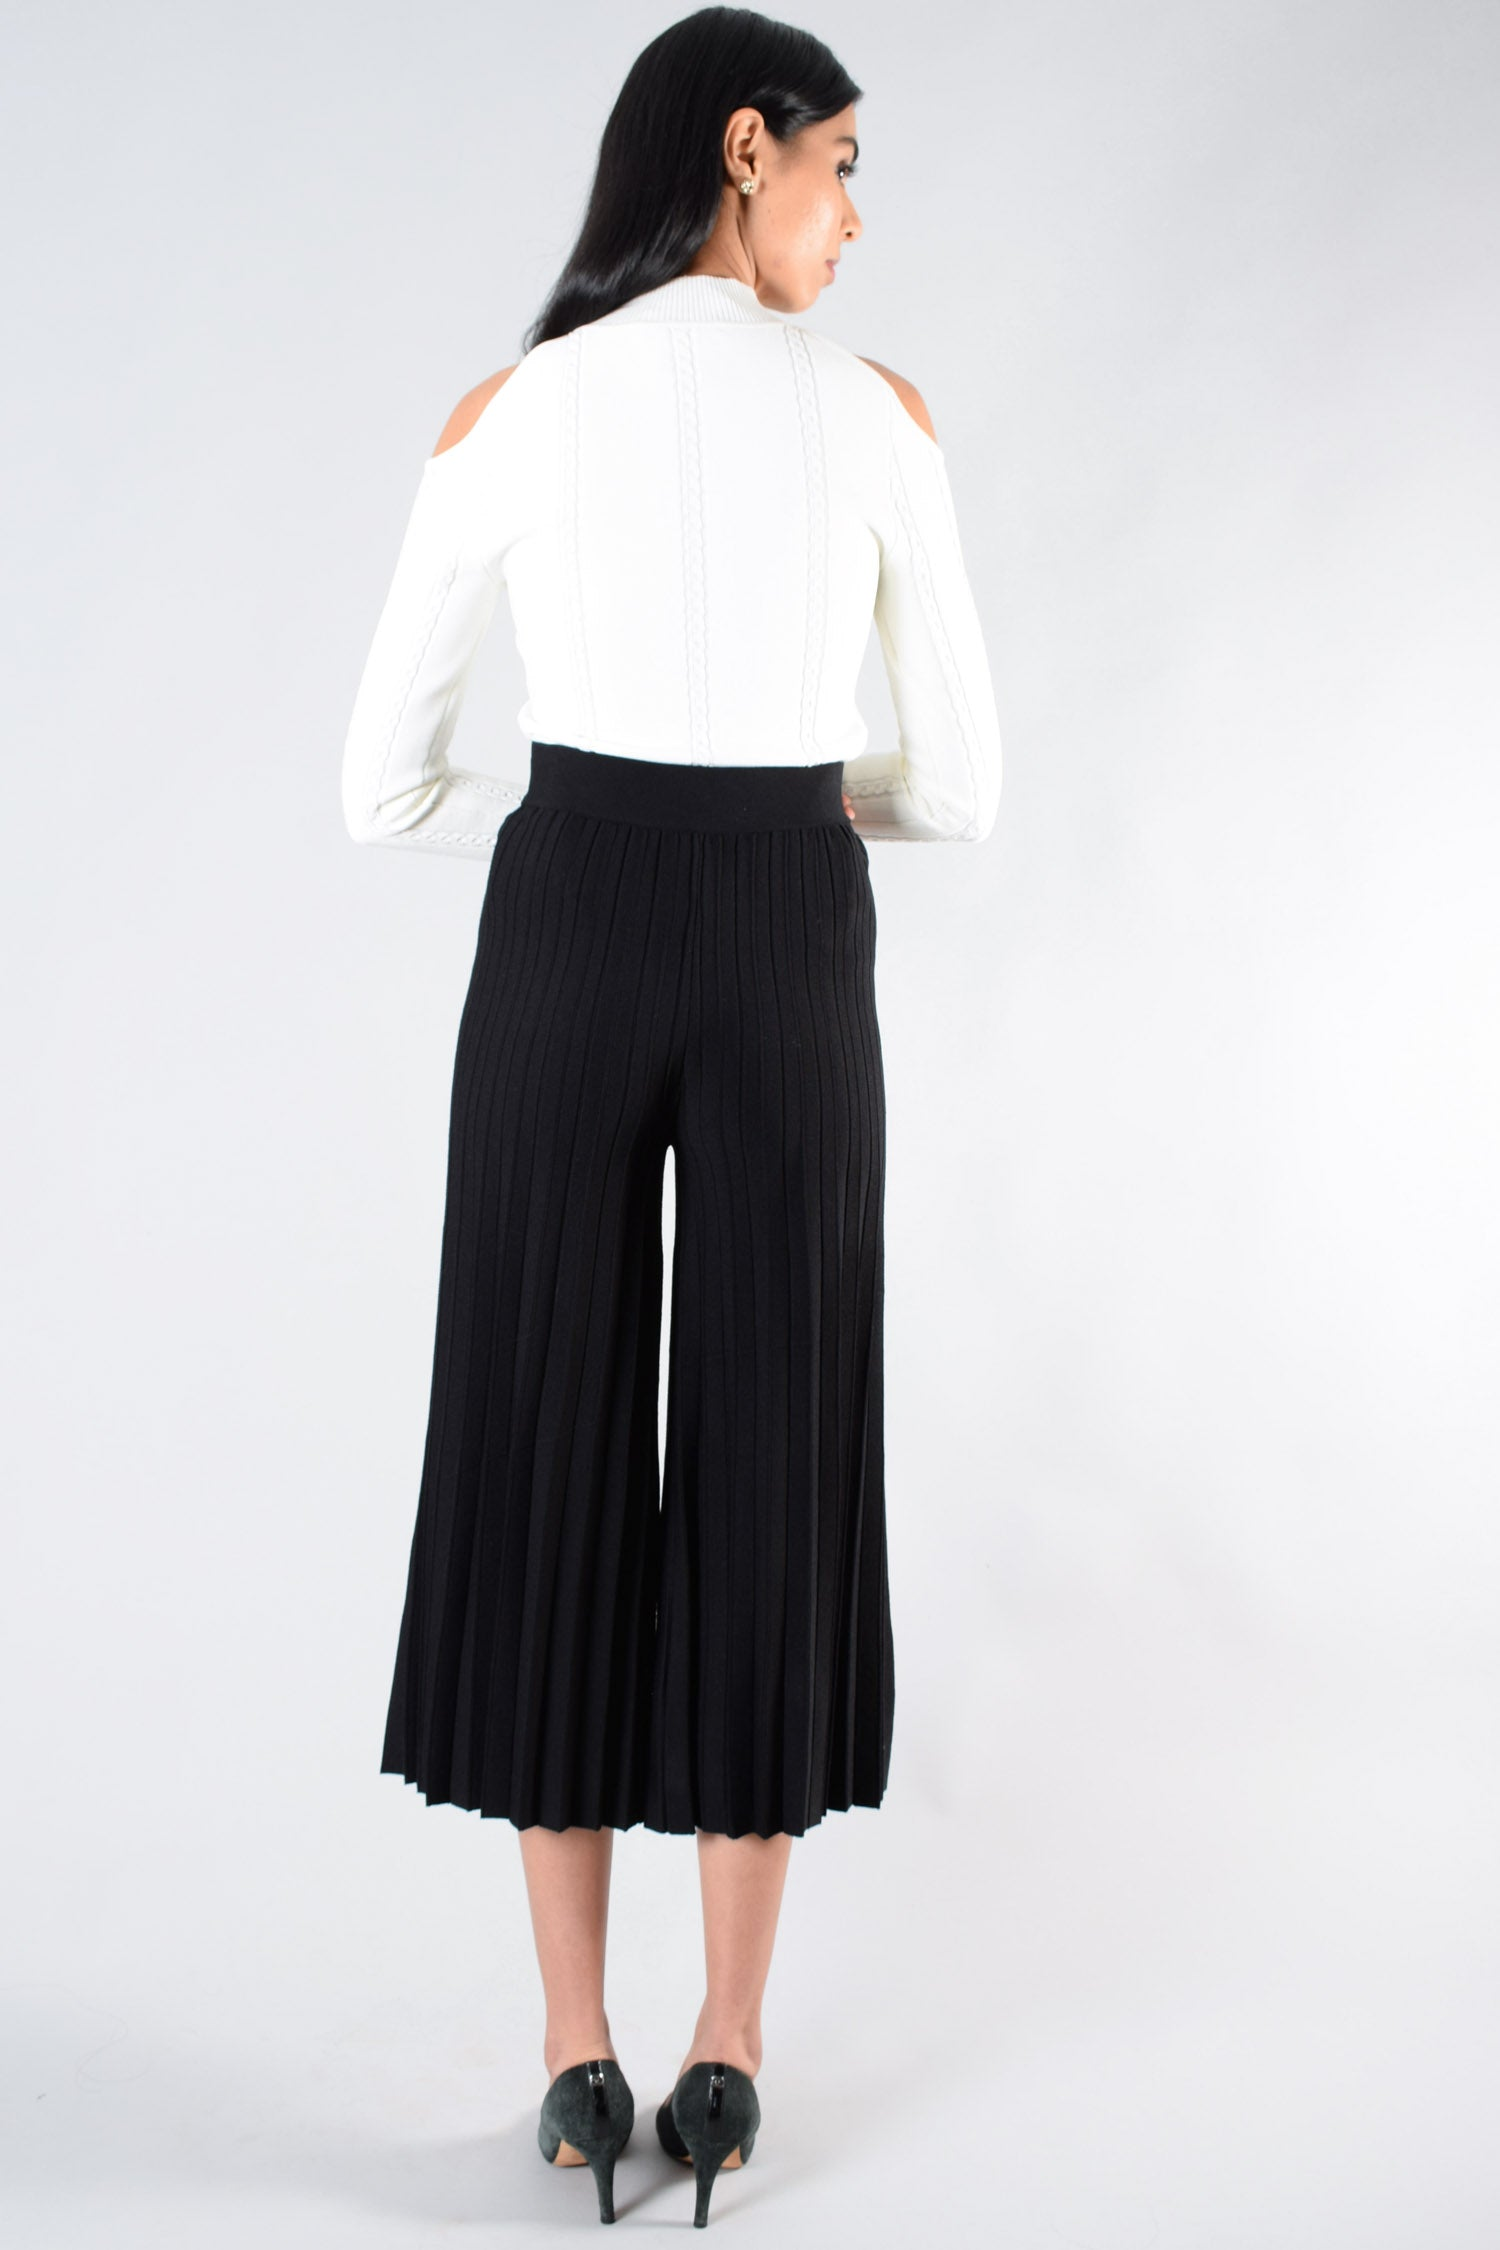 Derek Lam 10 Crosby Black Pleated Culottes Size S